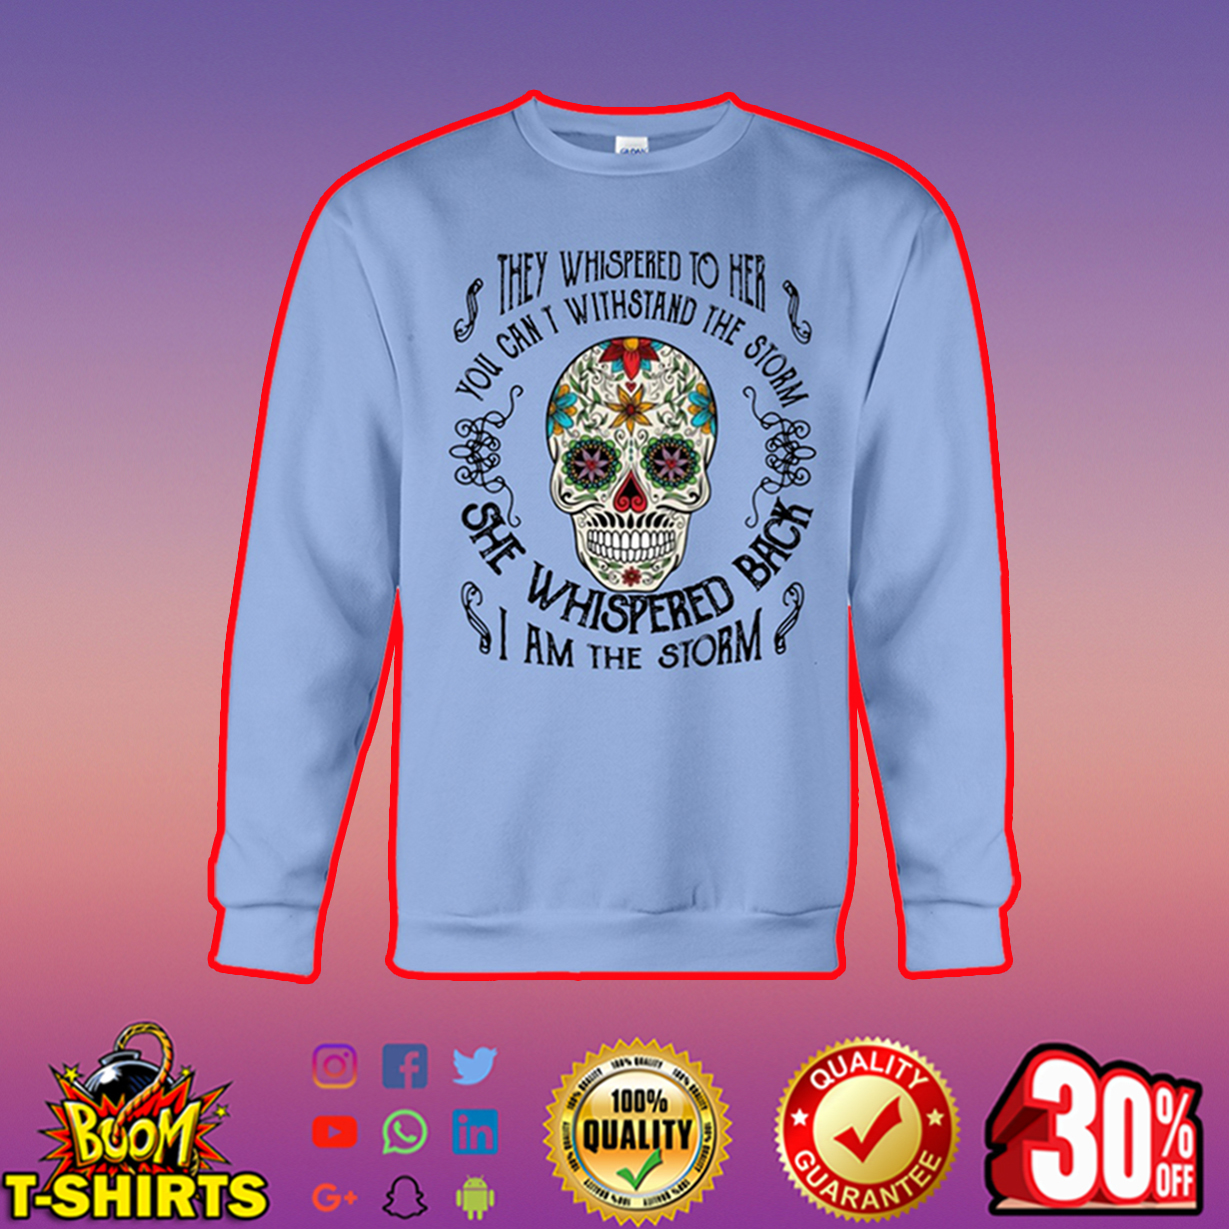 Skull they whispered to her you can't withstand the storm she whispered back I am the storm sweatshirt